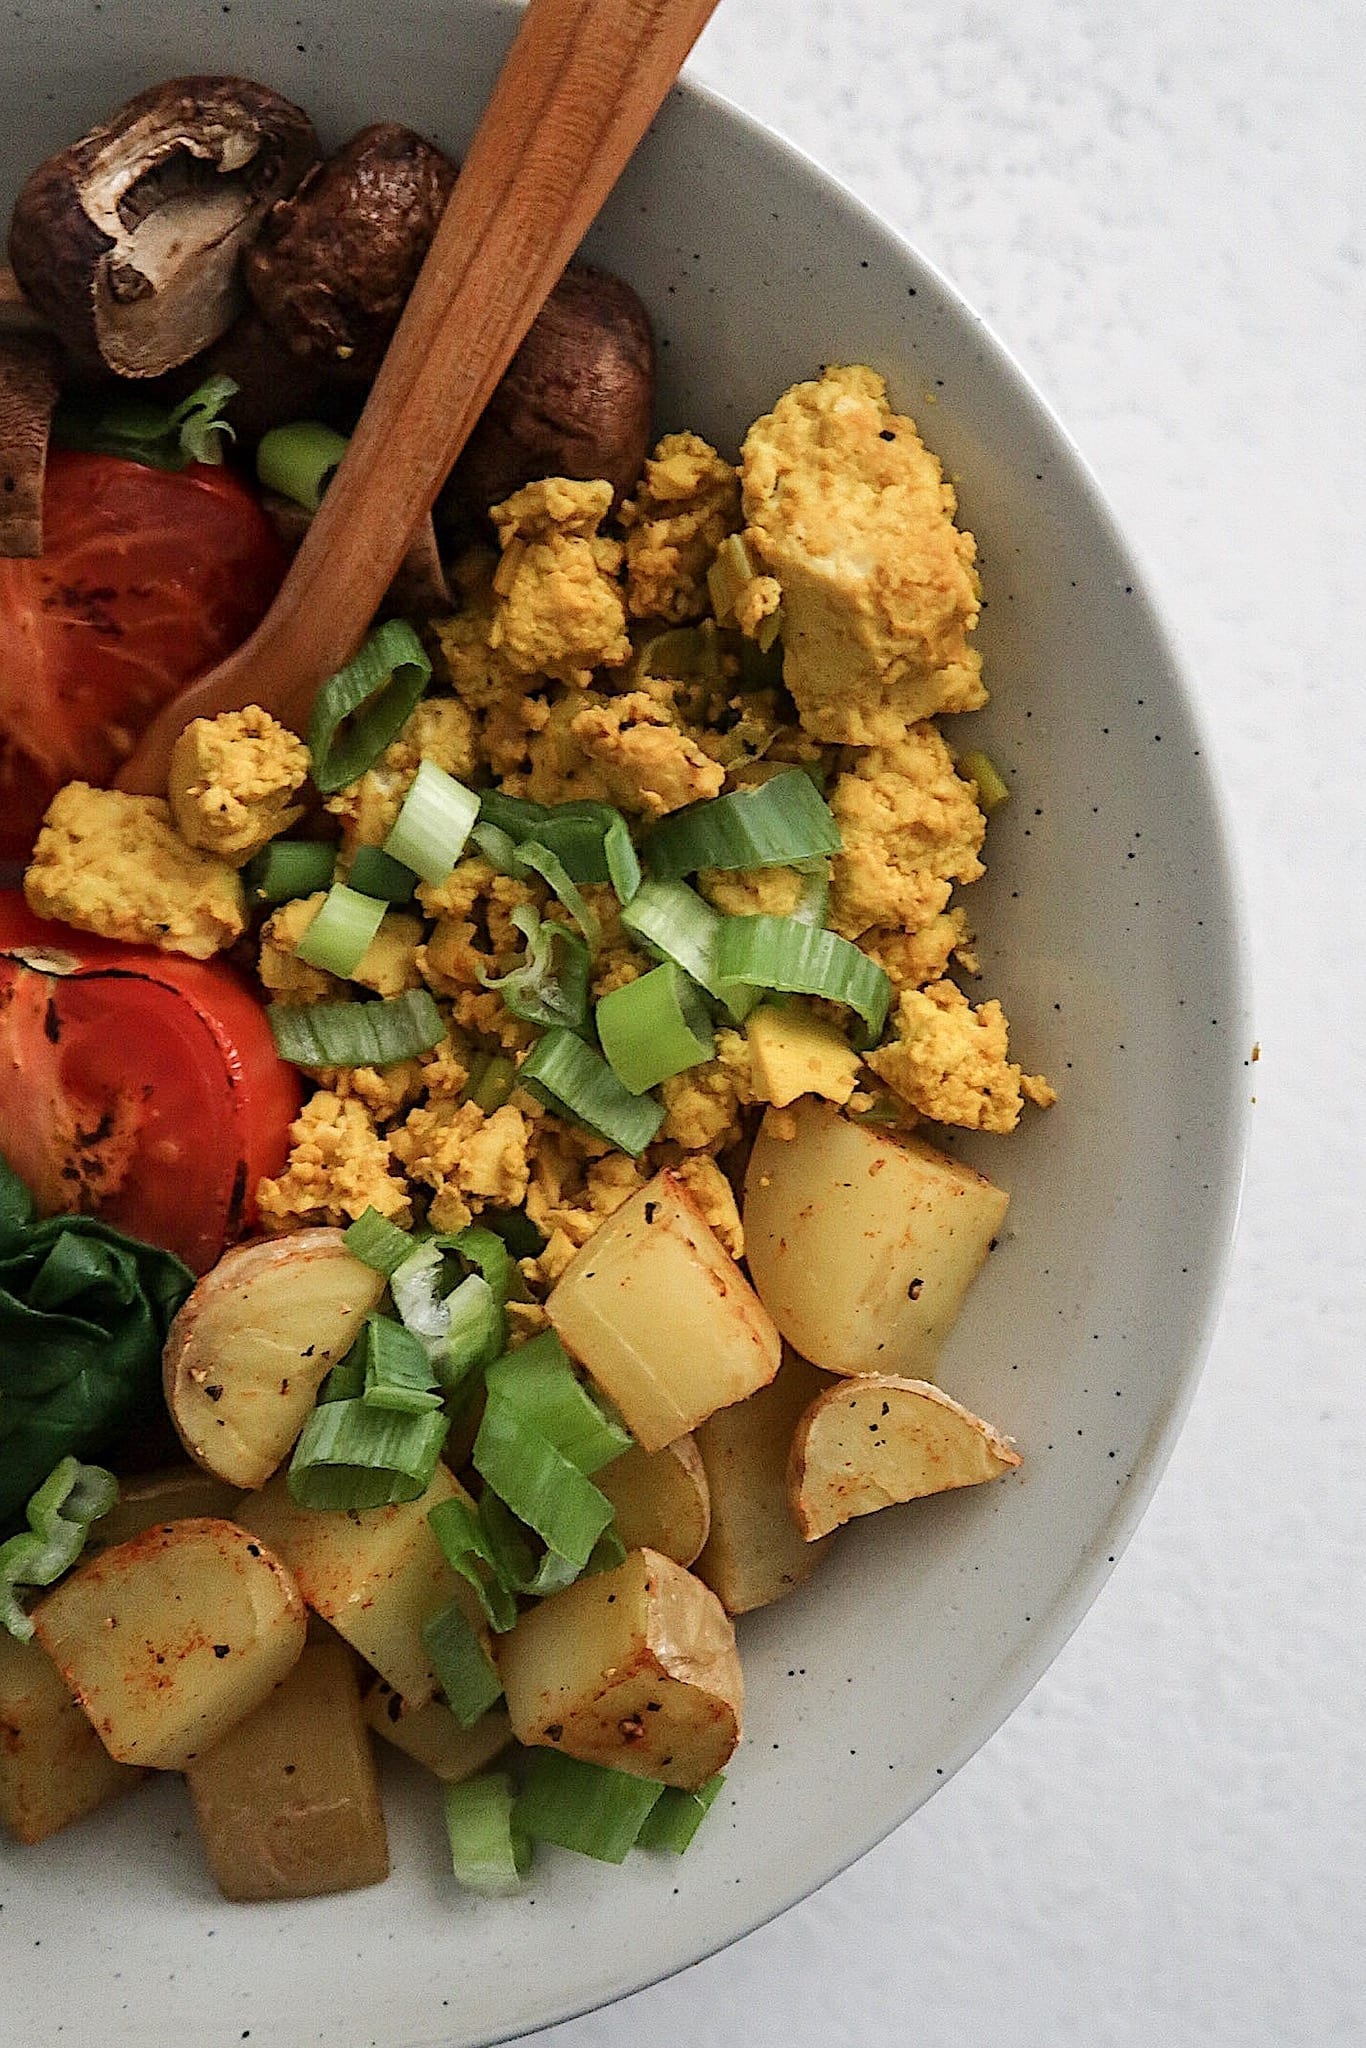 Healthy Vegan Breakfast Recipes, Tofu scramble breakfast bowl